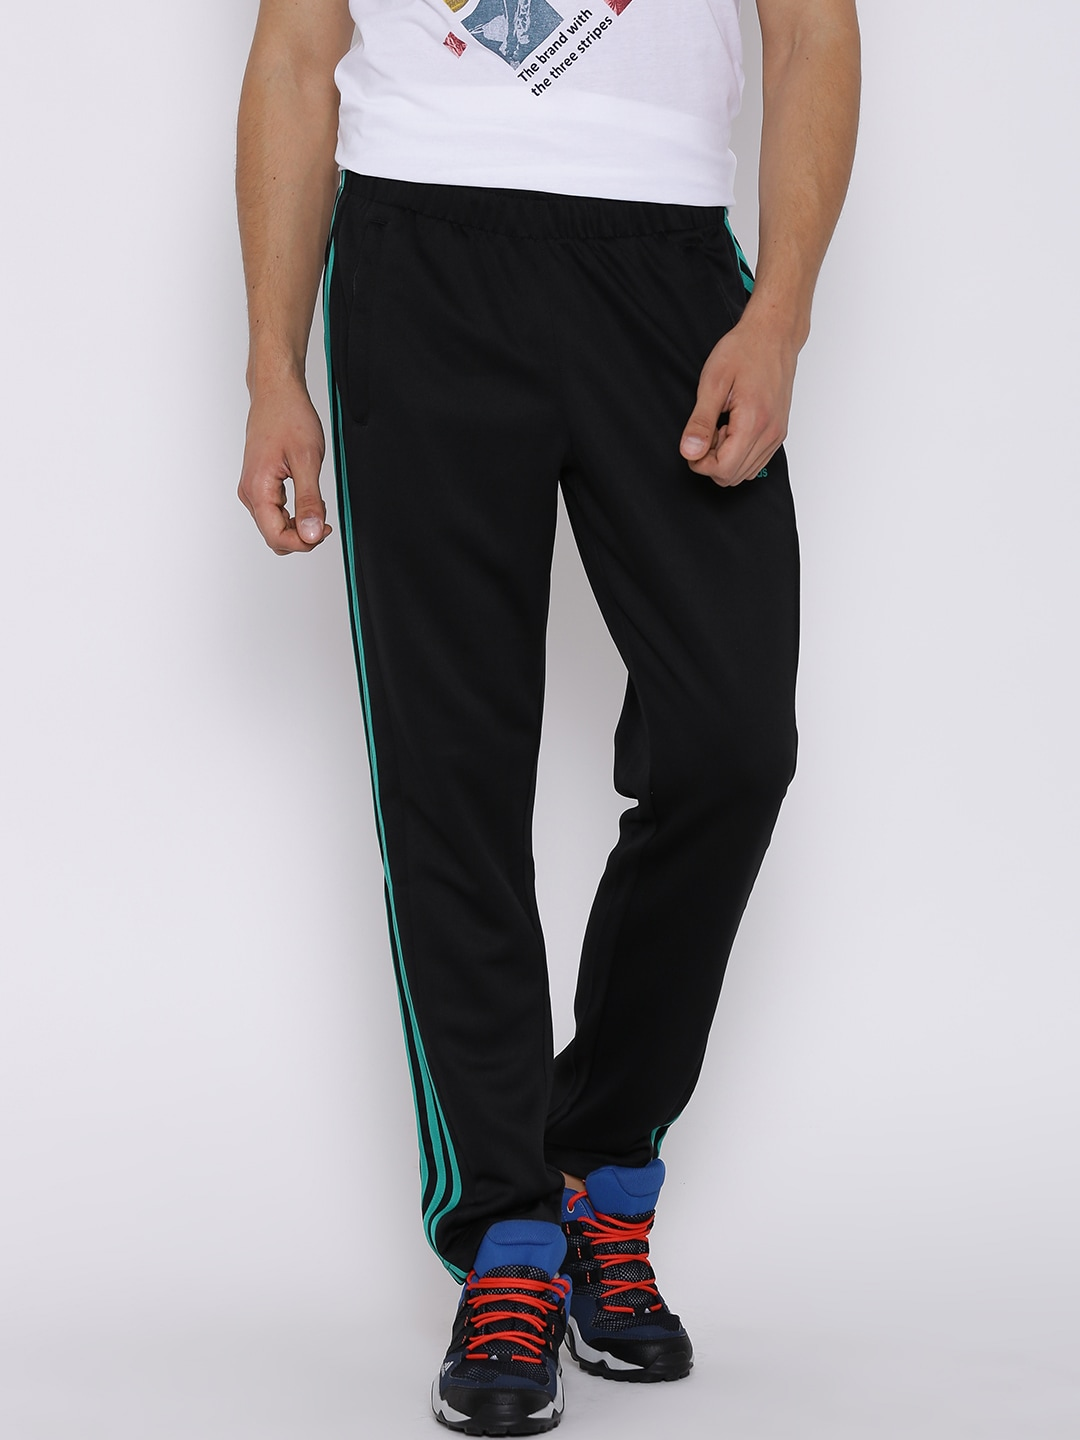 Don't get confused names, joggers are sweatpants which are tapered from the bottom and track pants are the simple sweatpants which are used for the athletic purpose or even in home, these are meant to be relaxing. joggers can be classified as track pants as they can also be used for the same purpose, but they have a small addition that they are tapered from the bottom for the trending ankle show.